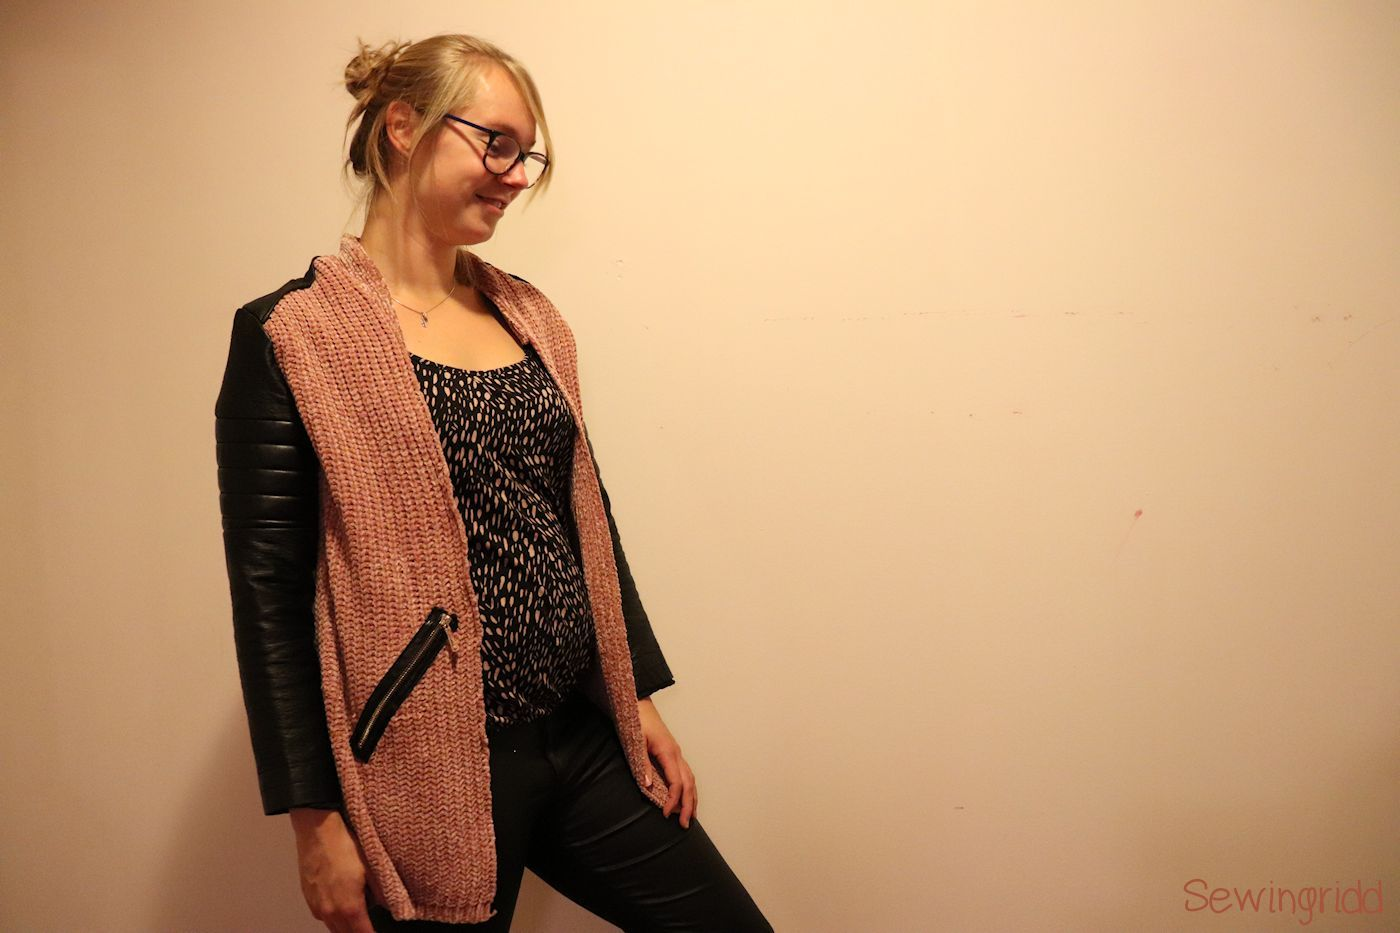 Refashioned cardigan by Sewingridd - The refashioners 2018